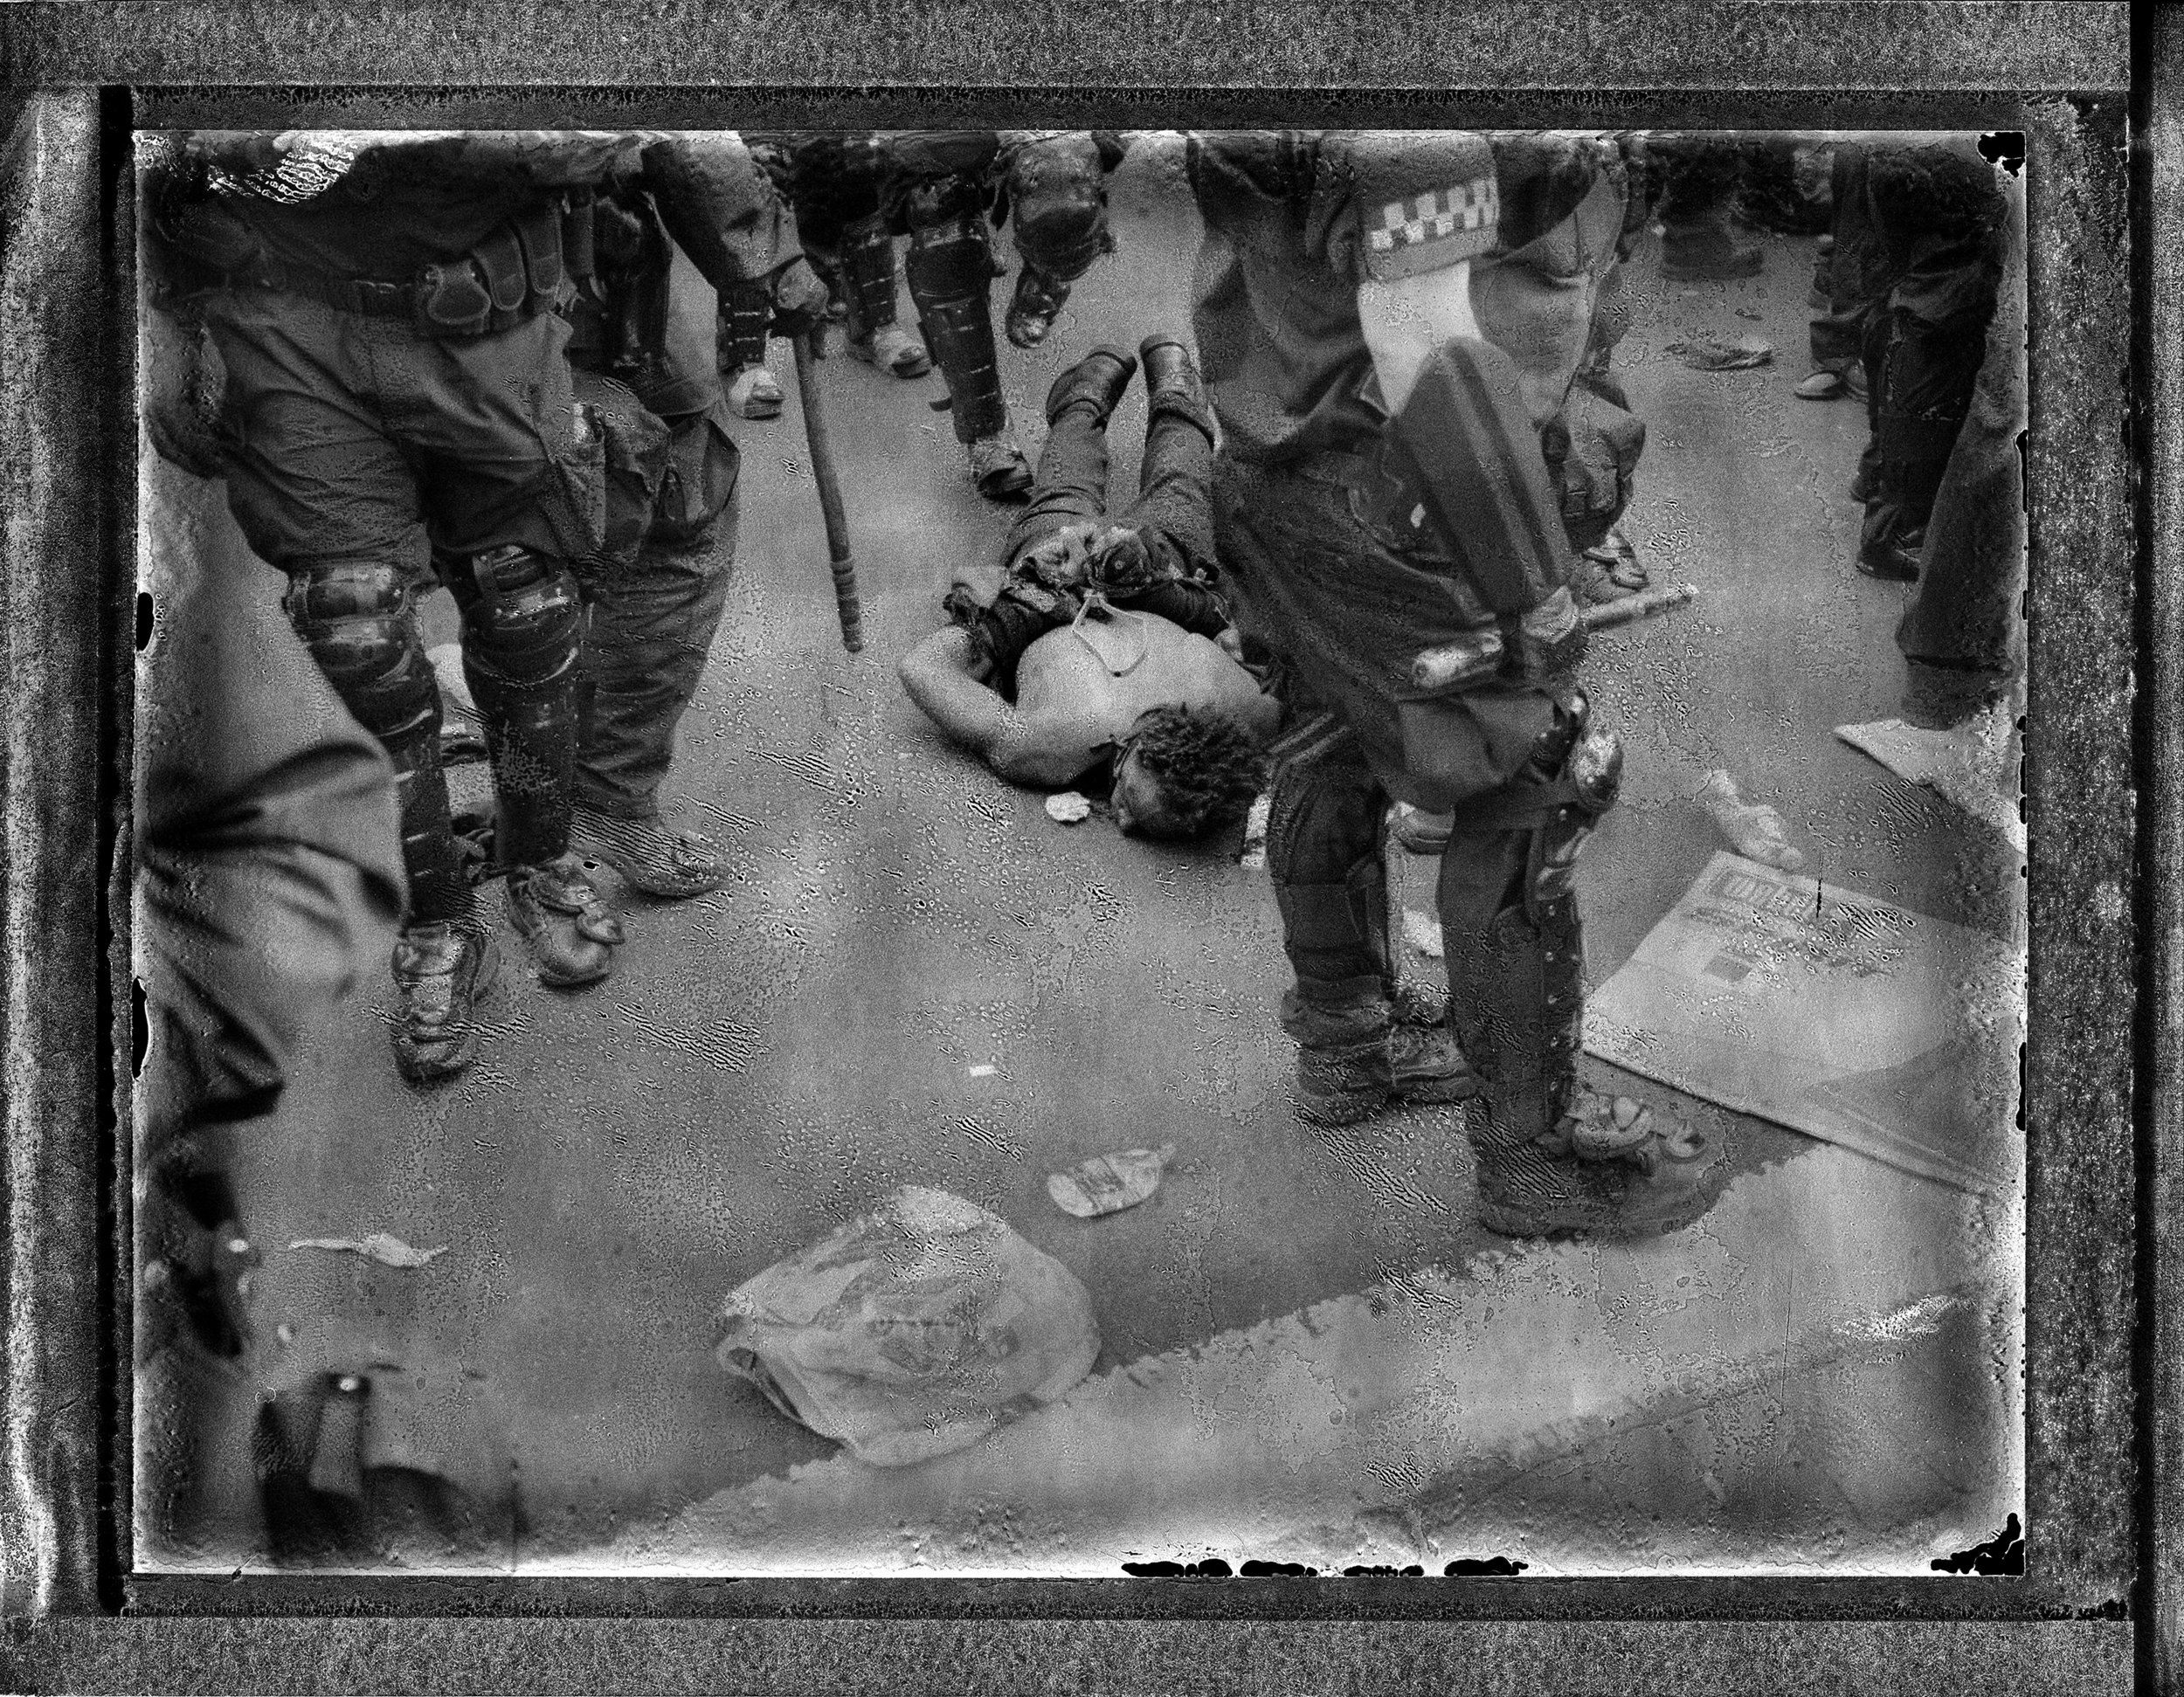 USA, Chicago, May 2012, A protester who was beaten and arrested by the polices lies bloodied on the pavement of Cermak Road on Chicago's South Side after protesting the NATO Summit.